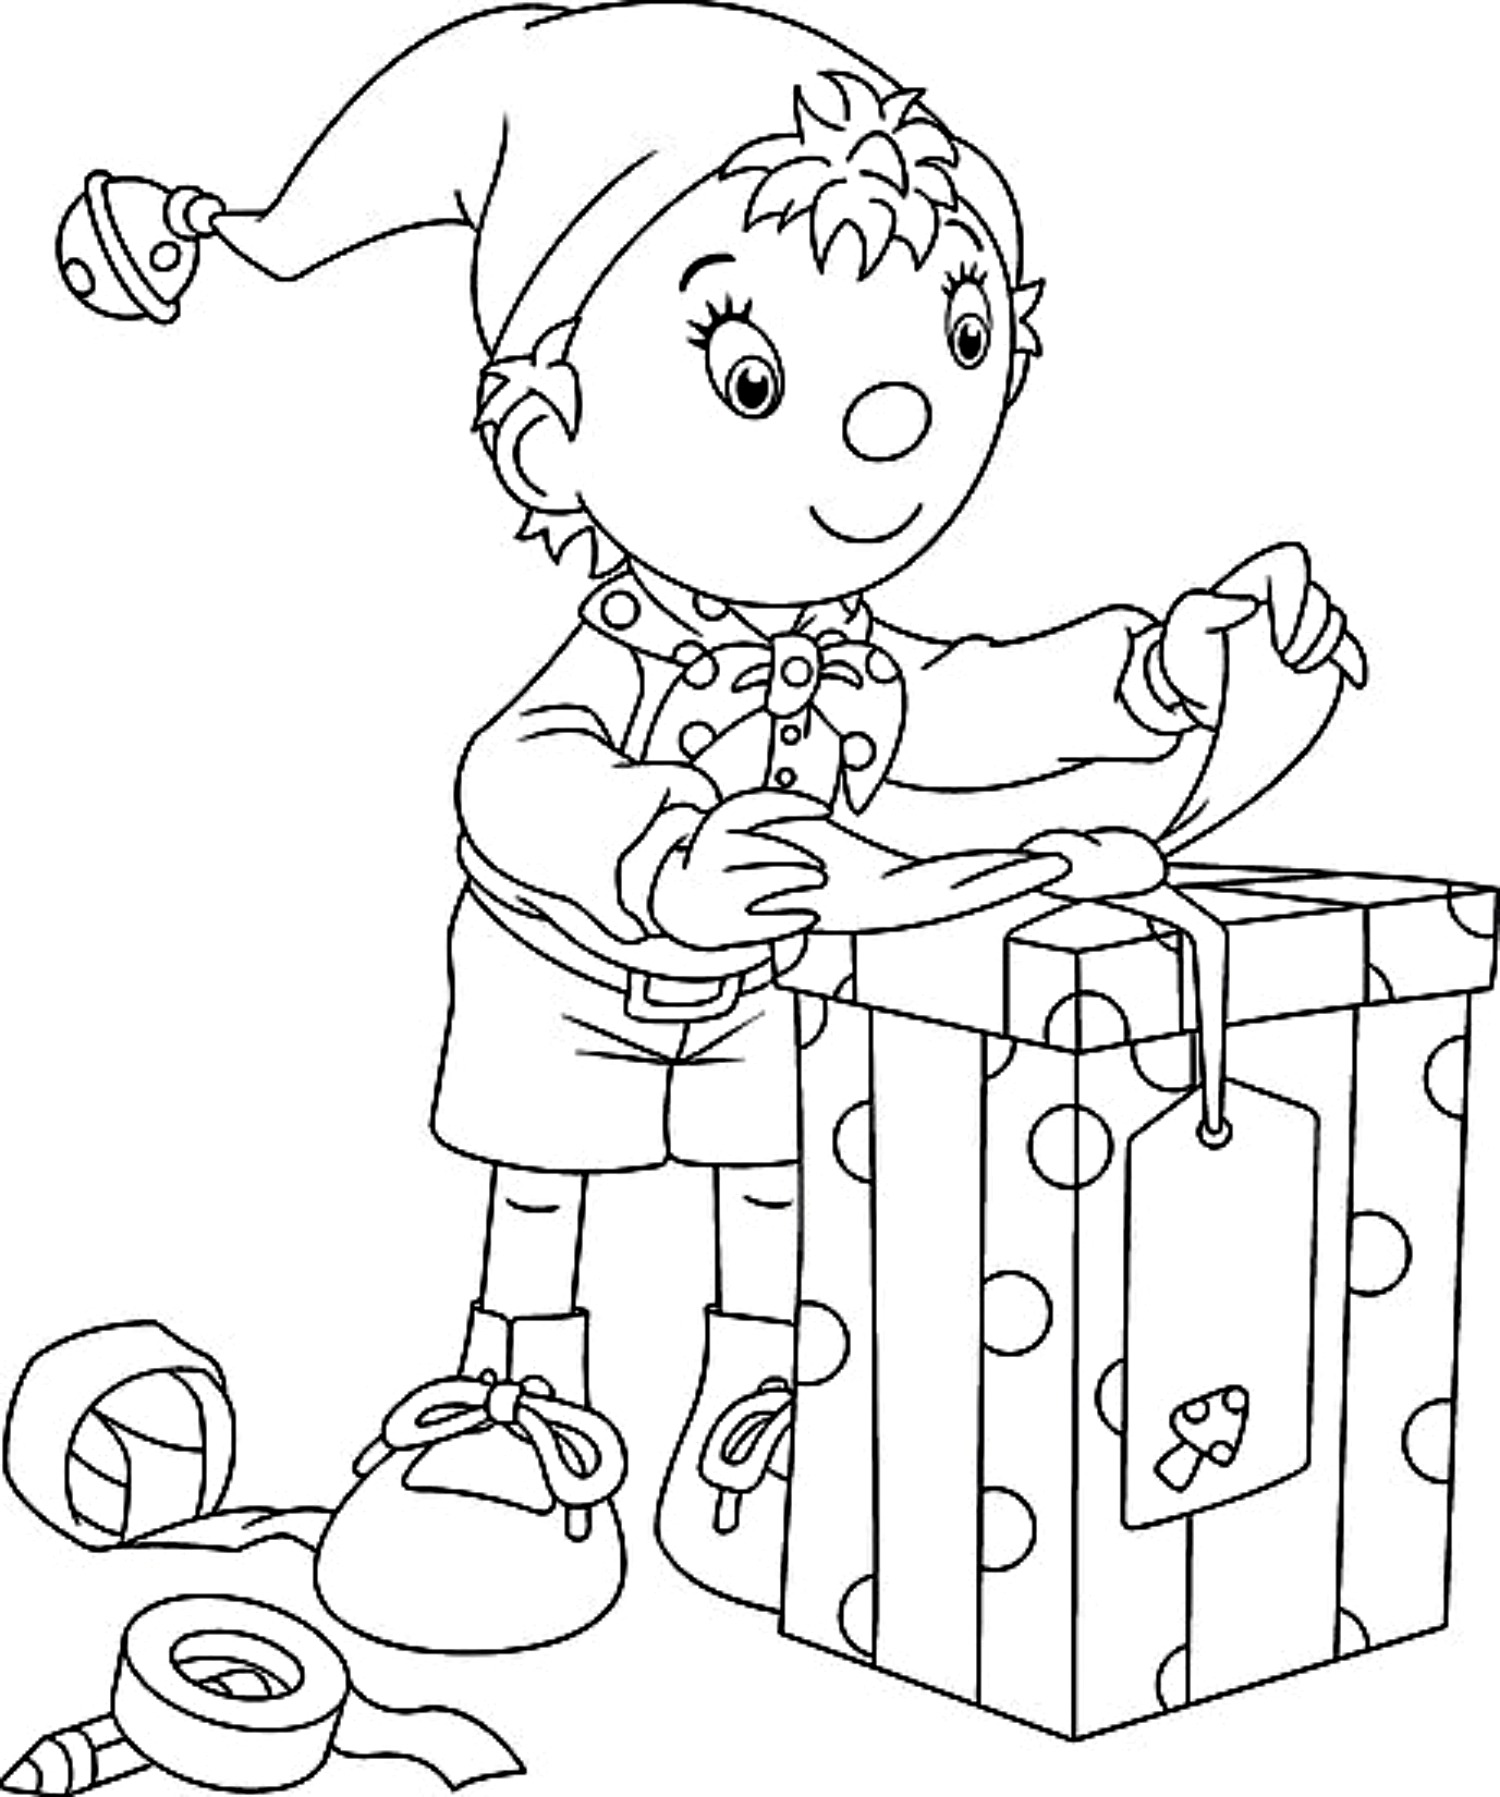 Free coloring pages for kindergarten printable - Coloring Pages For Kindergarten Free